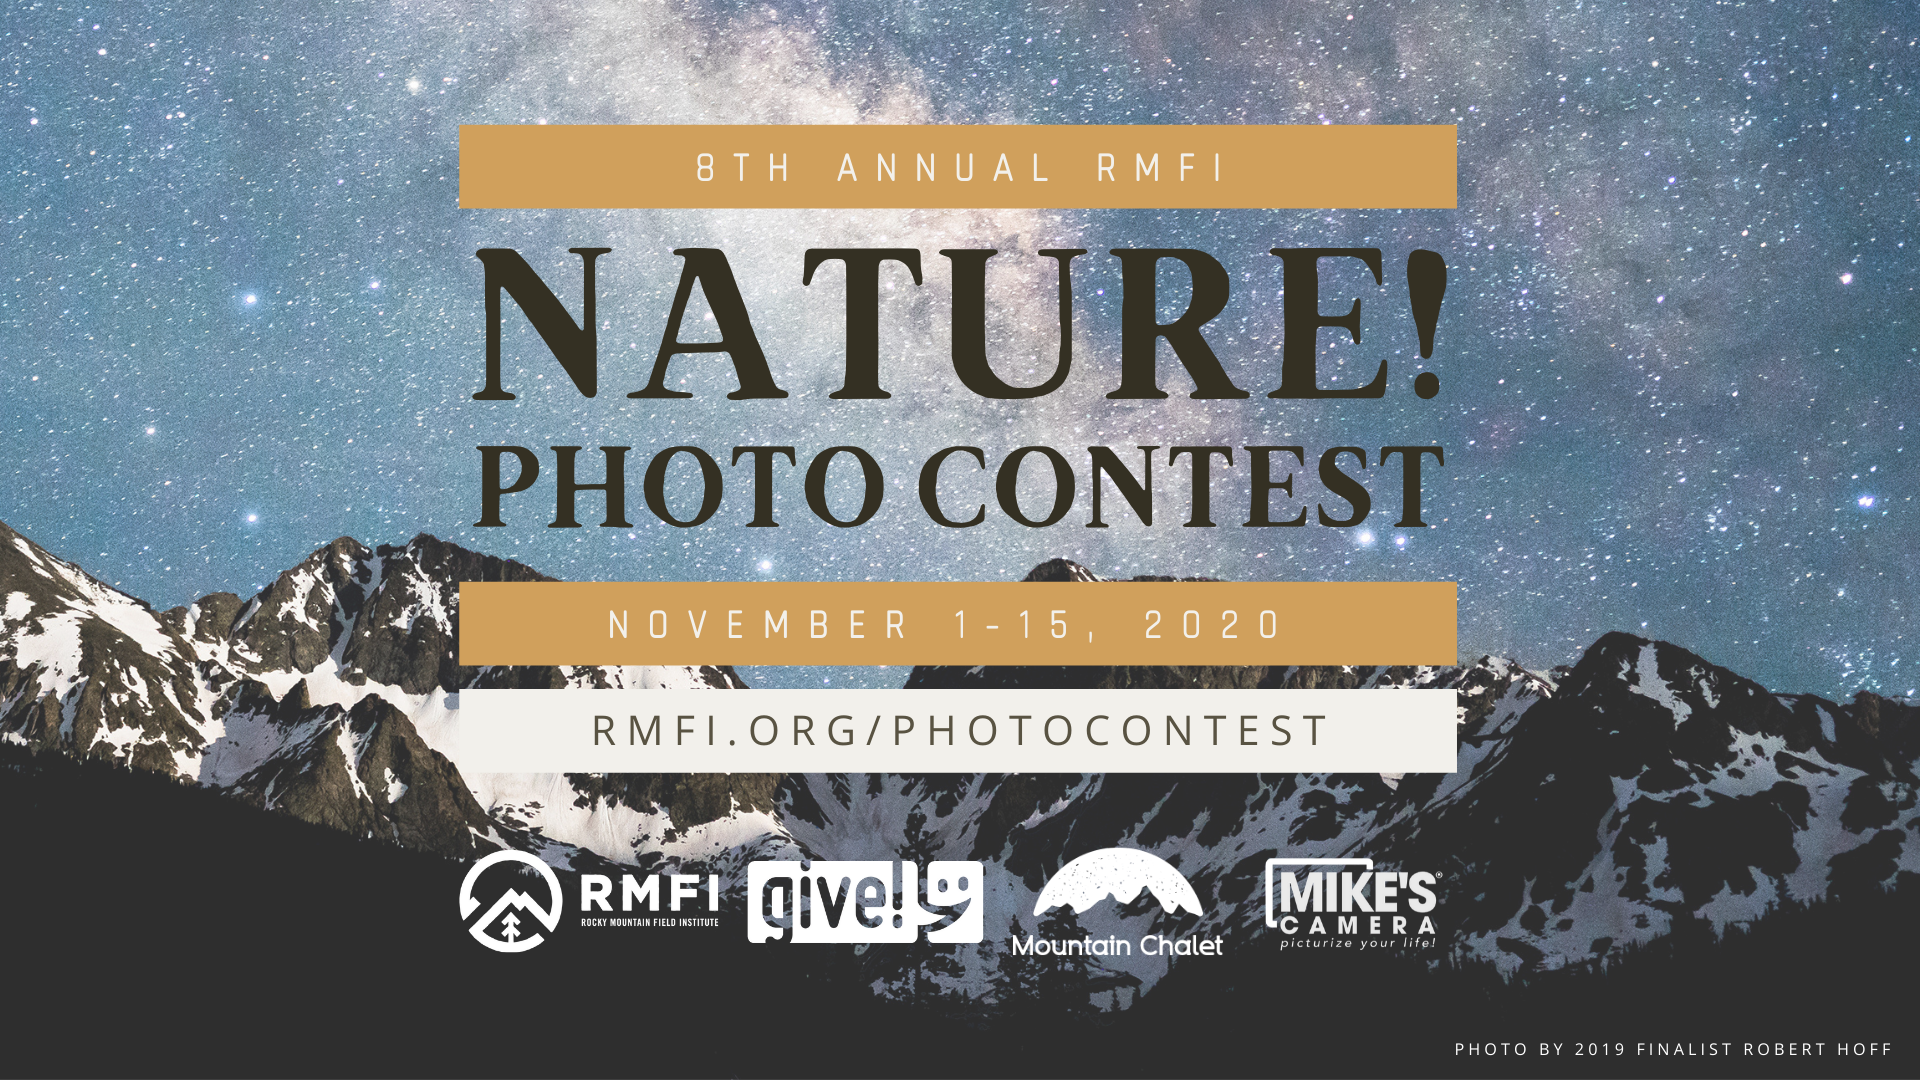 "Graphic stating ""8th Annual RMFI Nature! Photo Contest"" with the submission dates and sponsors' logos including Indy Give! Campaign, Mountain Chalet, and Mike's Camera."